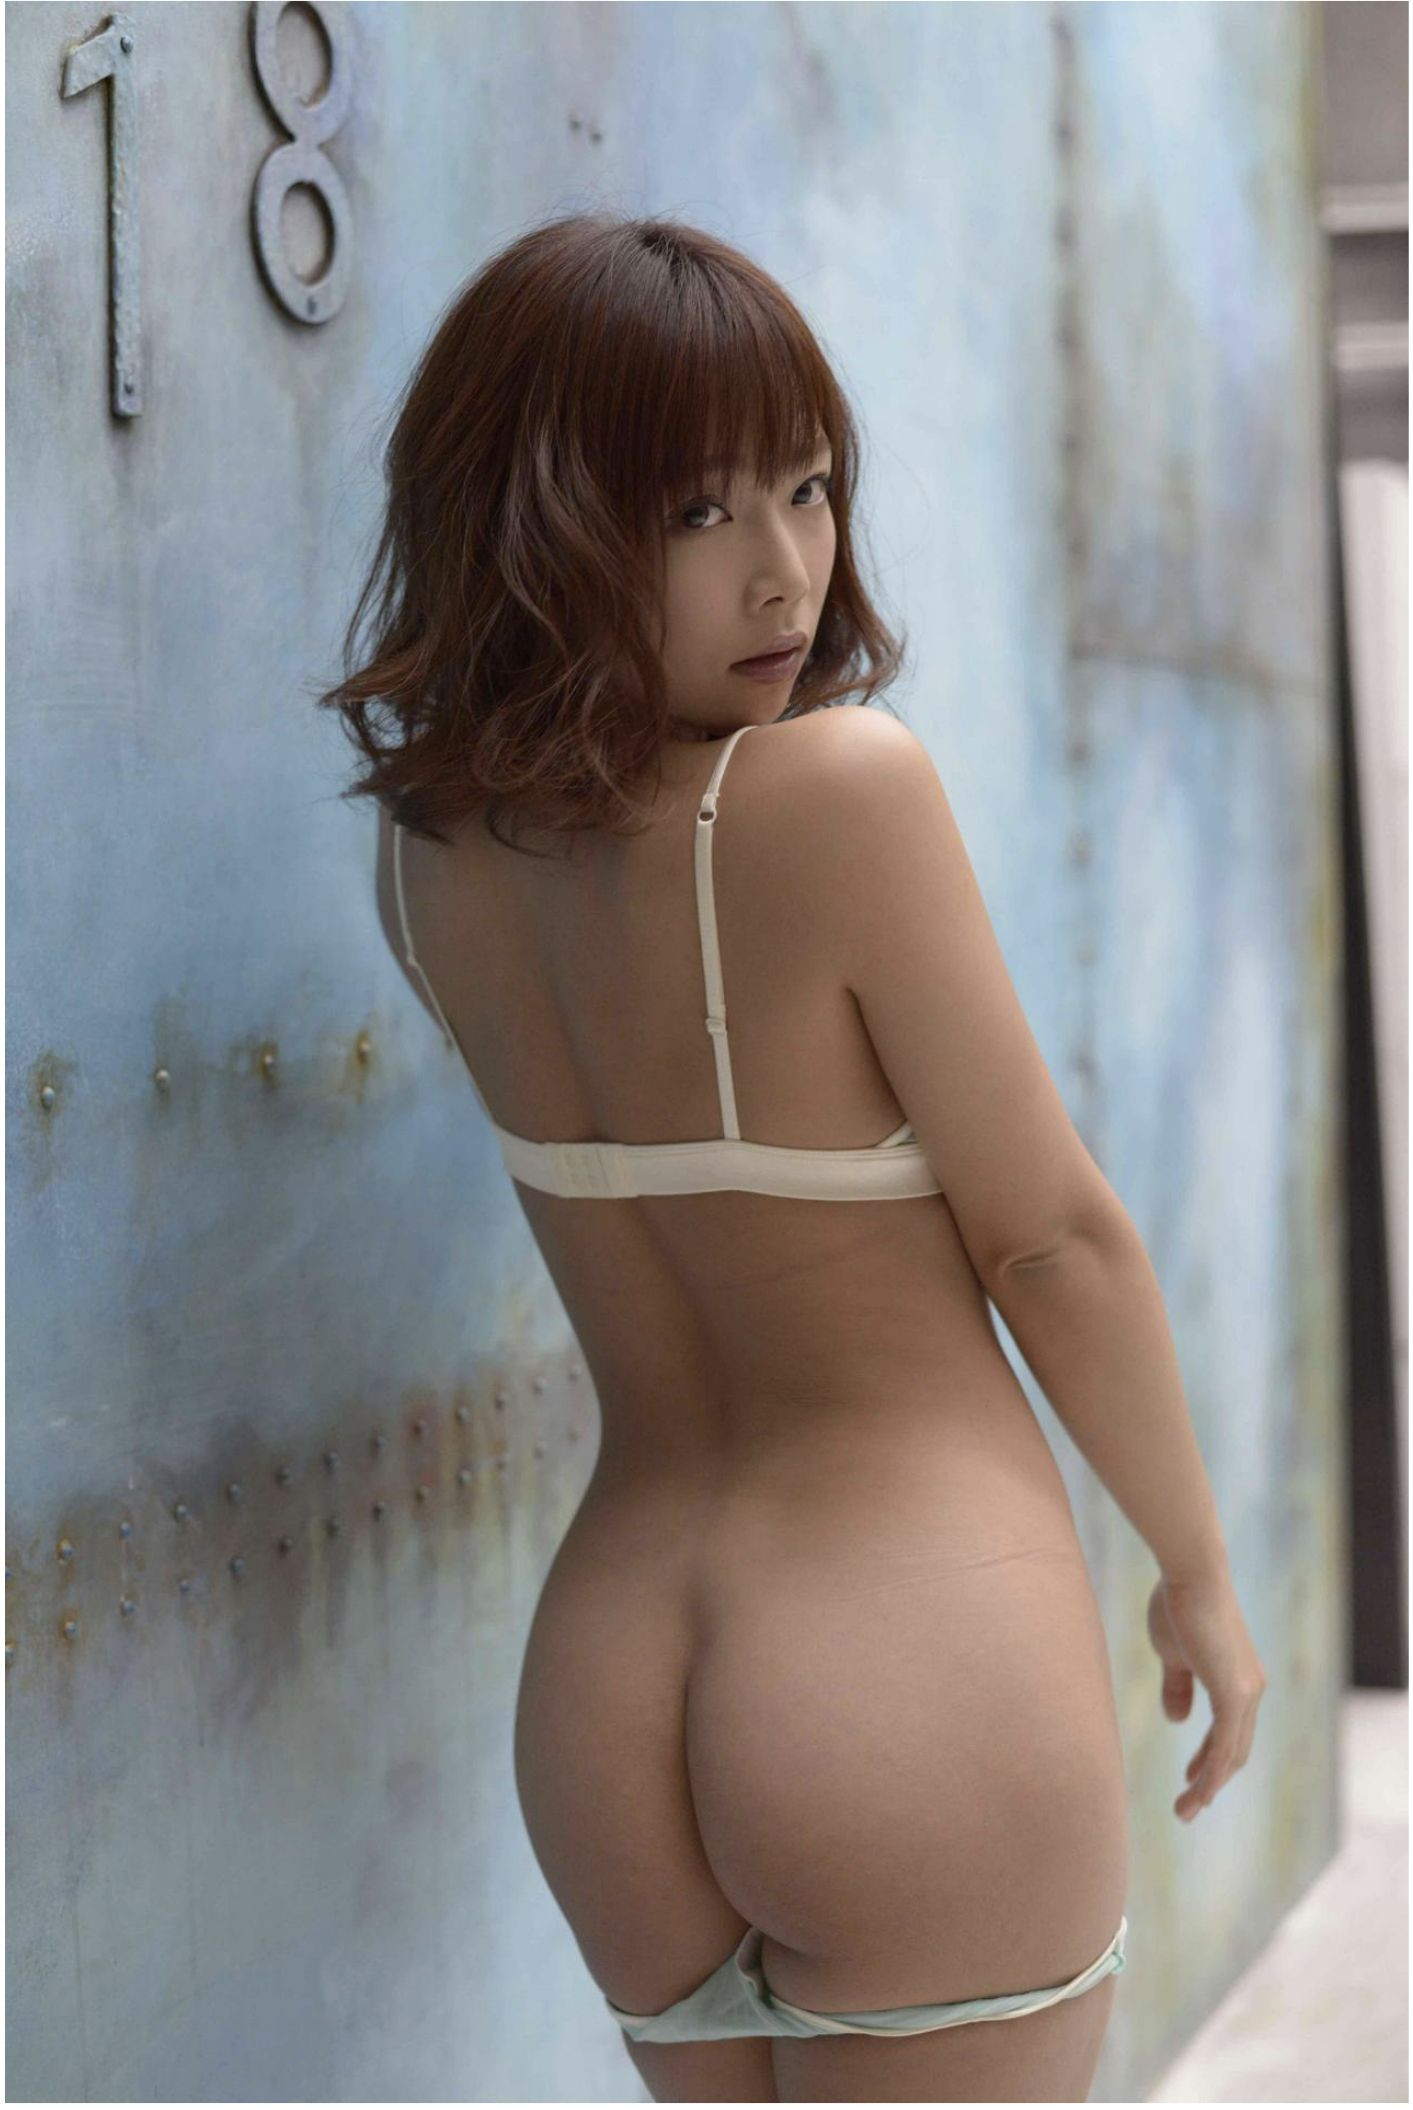 SOFT ON DEMAND GRAVURE COLLECTION 紗倉まな04 photo 084